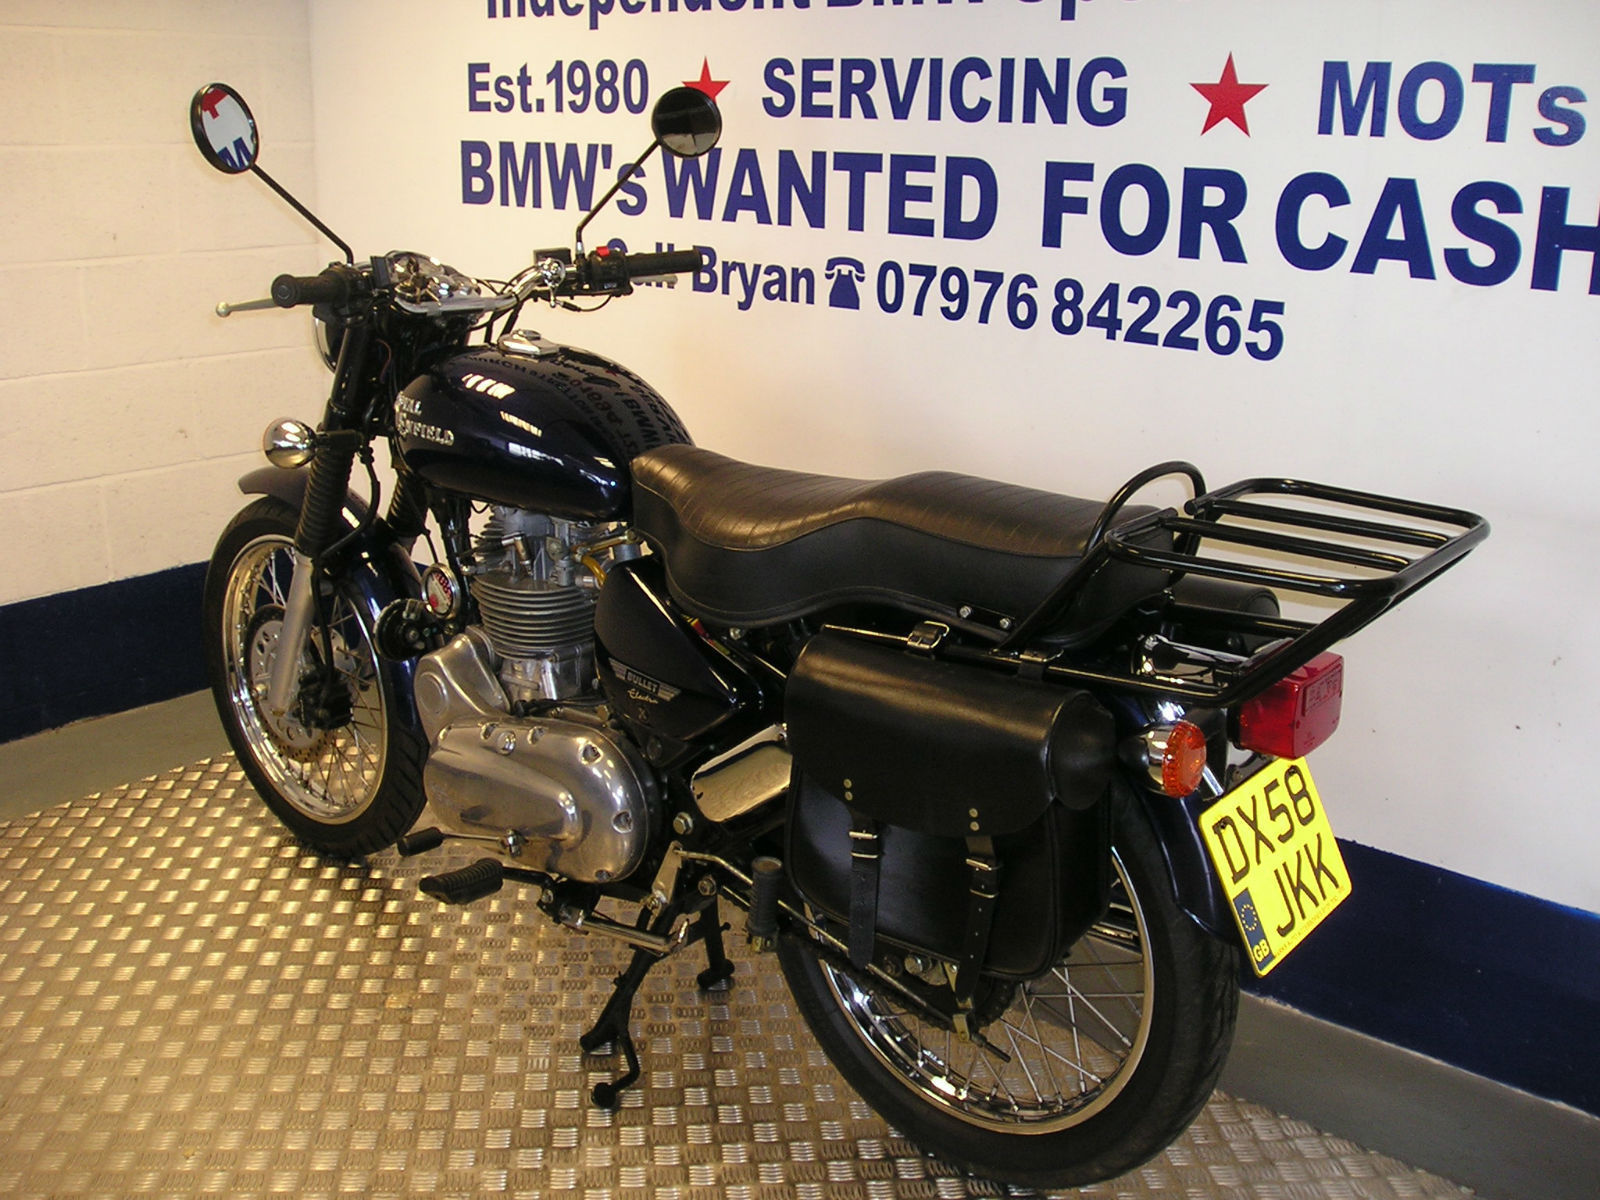 royal enfield electra wiring diagram images 350 wiring diagram pics photos royal enfield electra manual